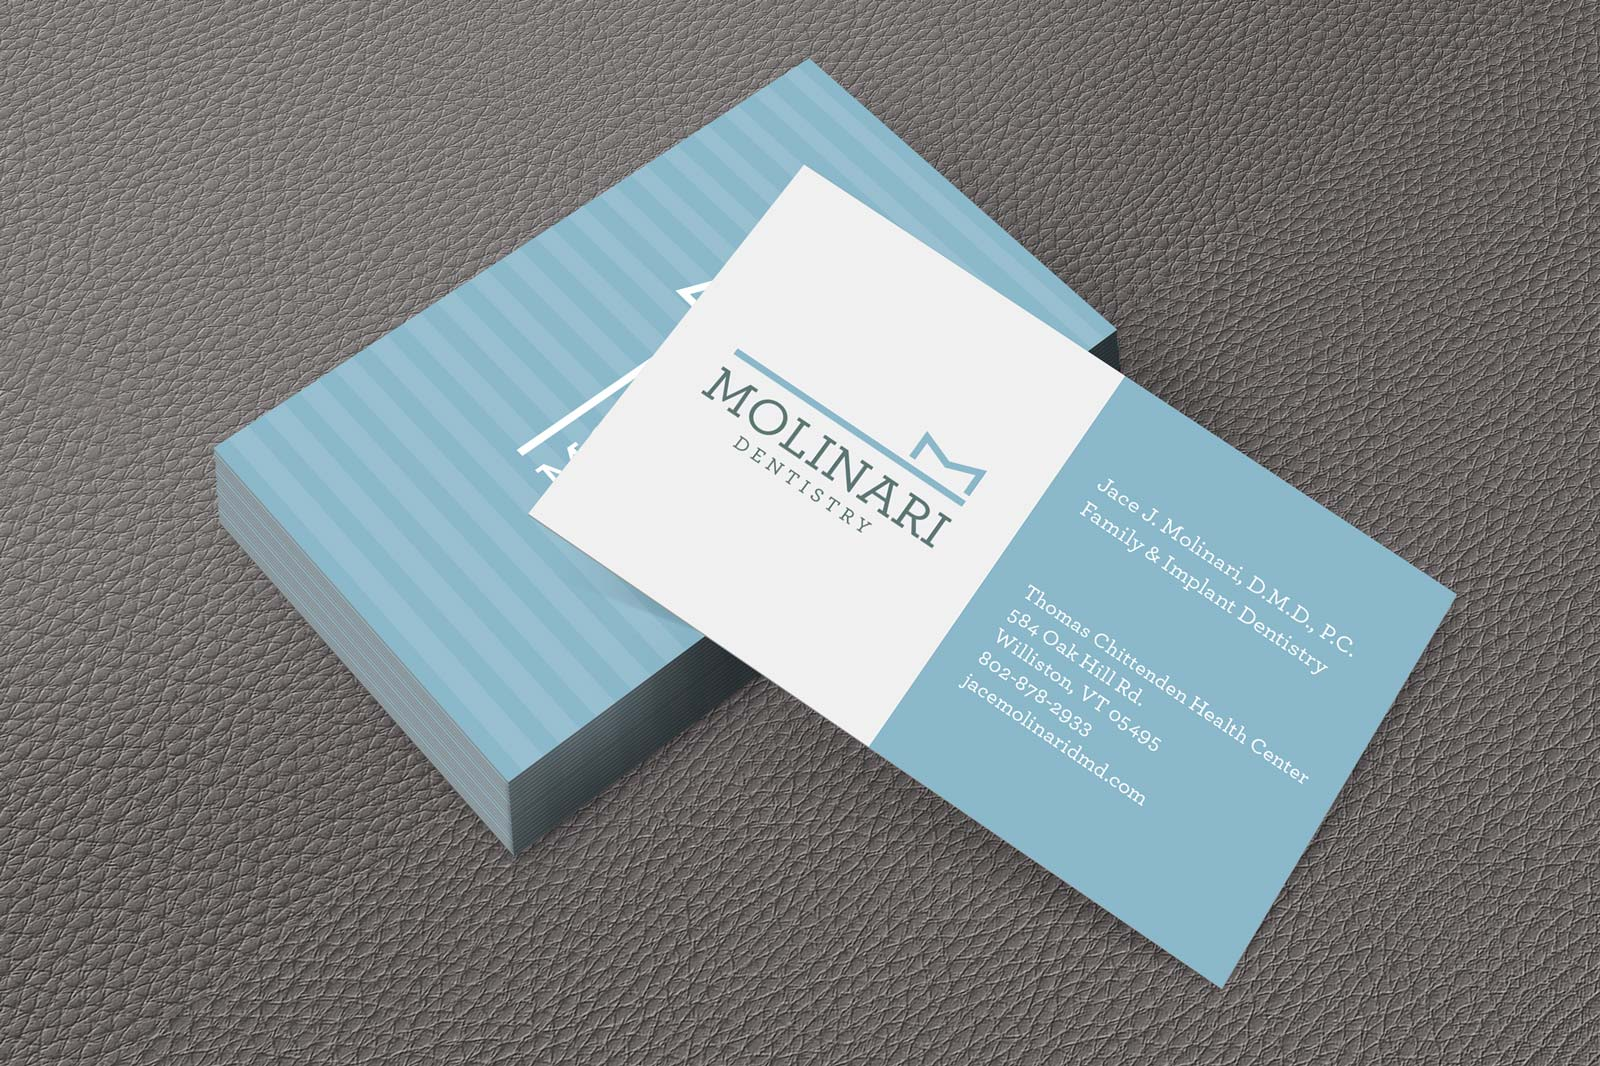 Branded stationary design and custom logo design Burlington, VT - Clutch Creative Co.